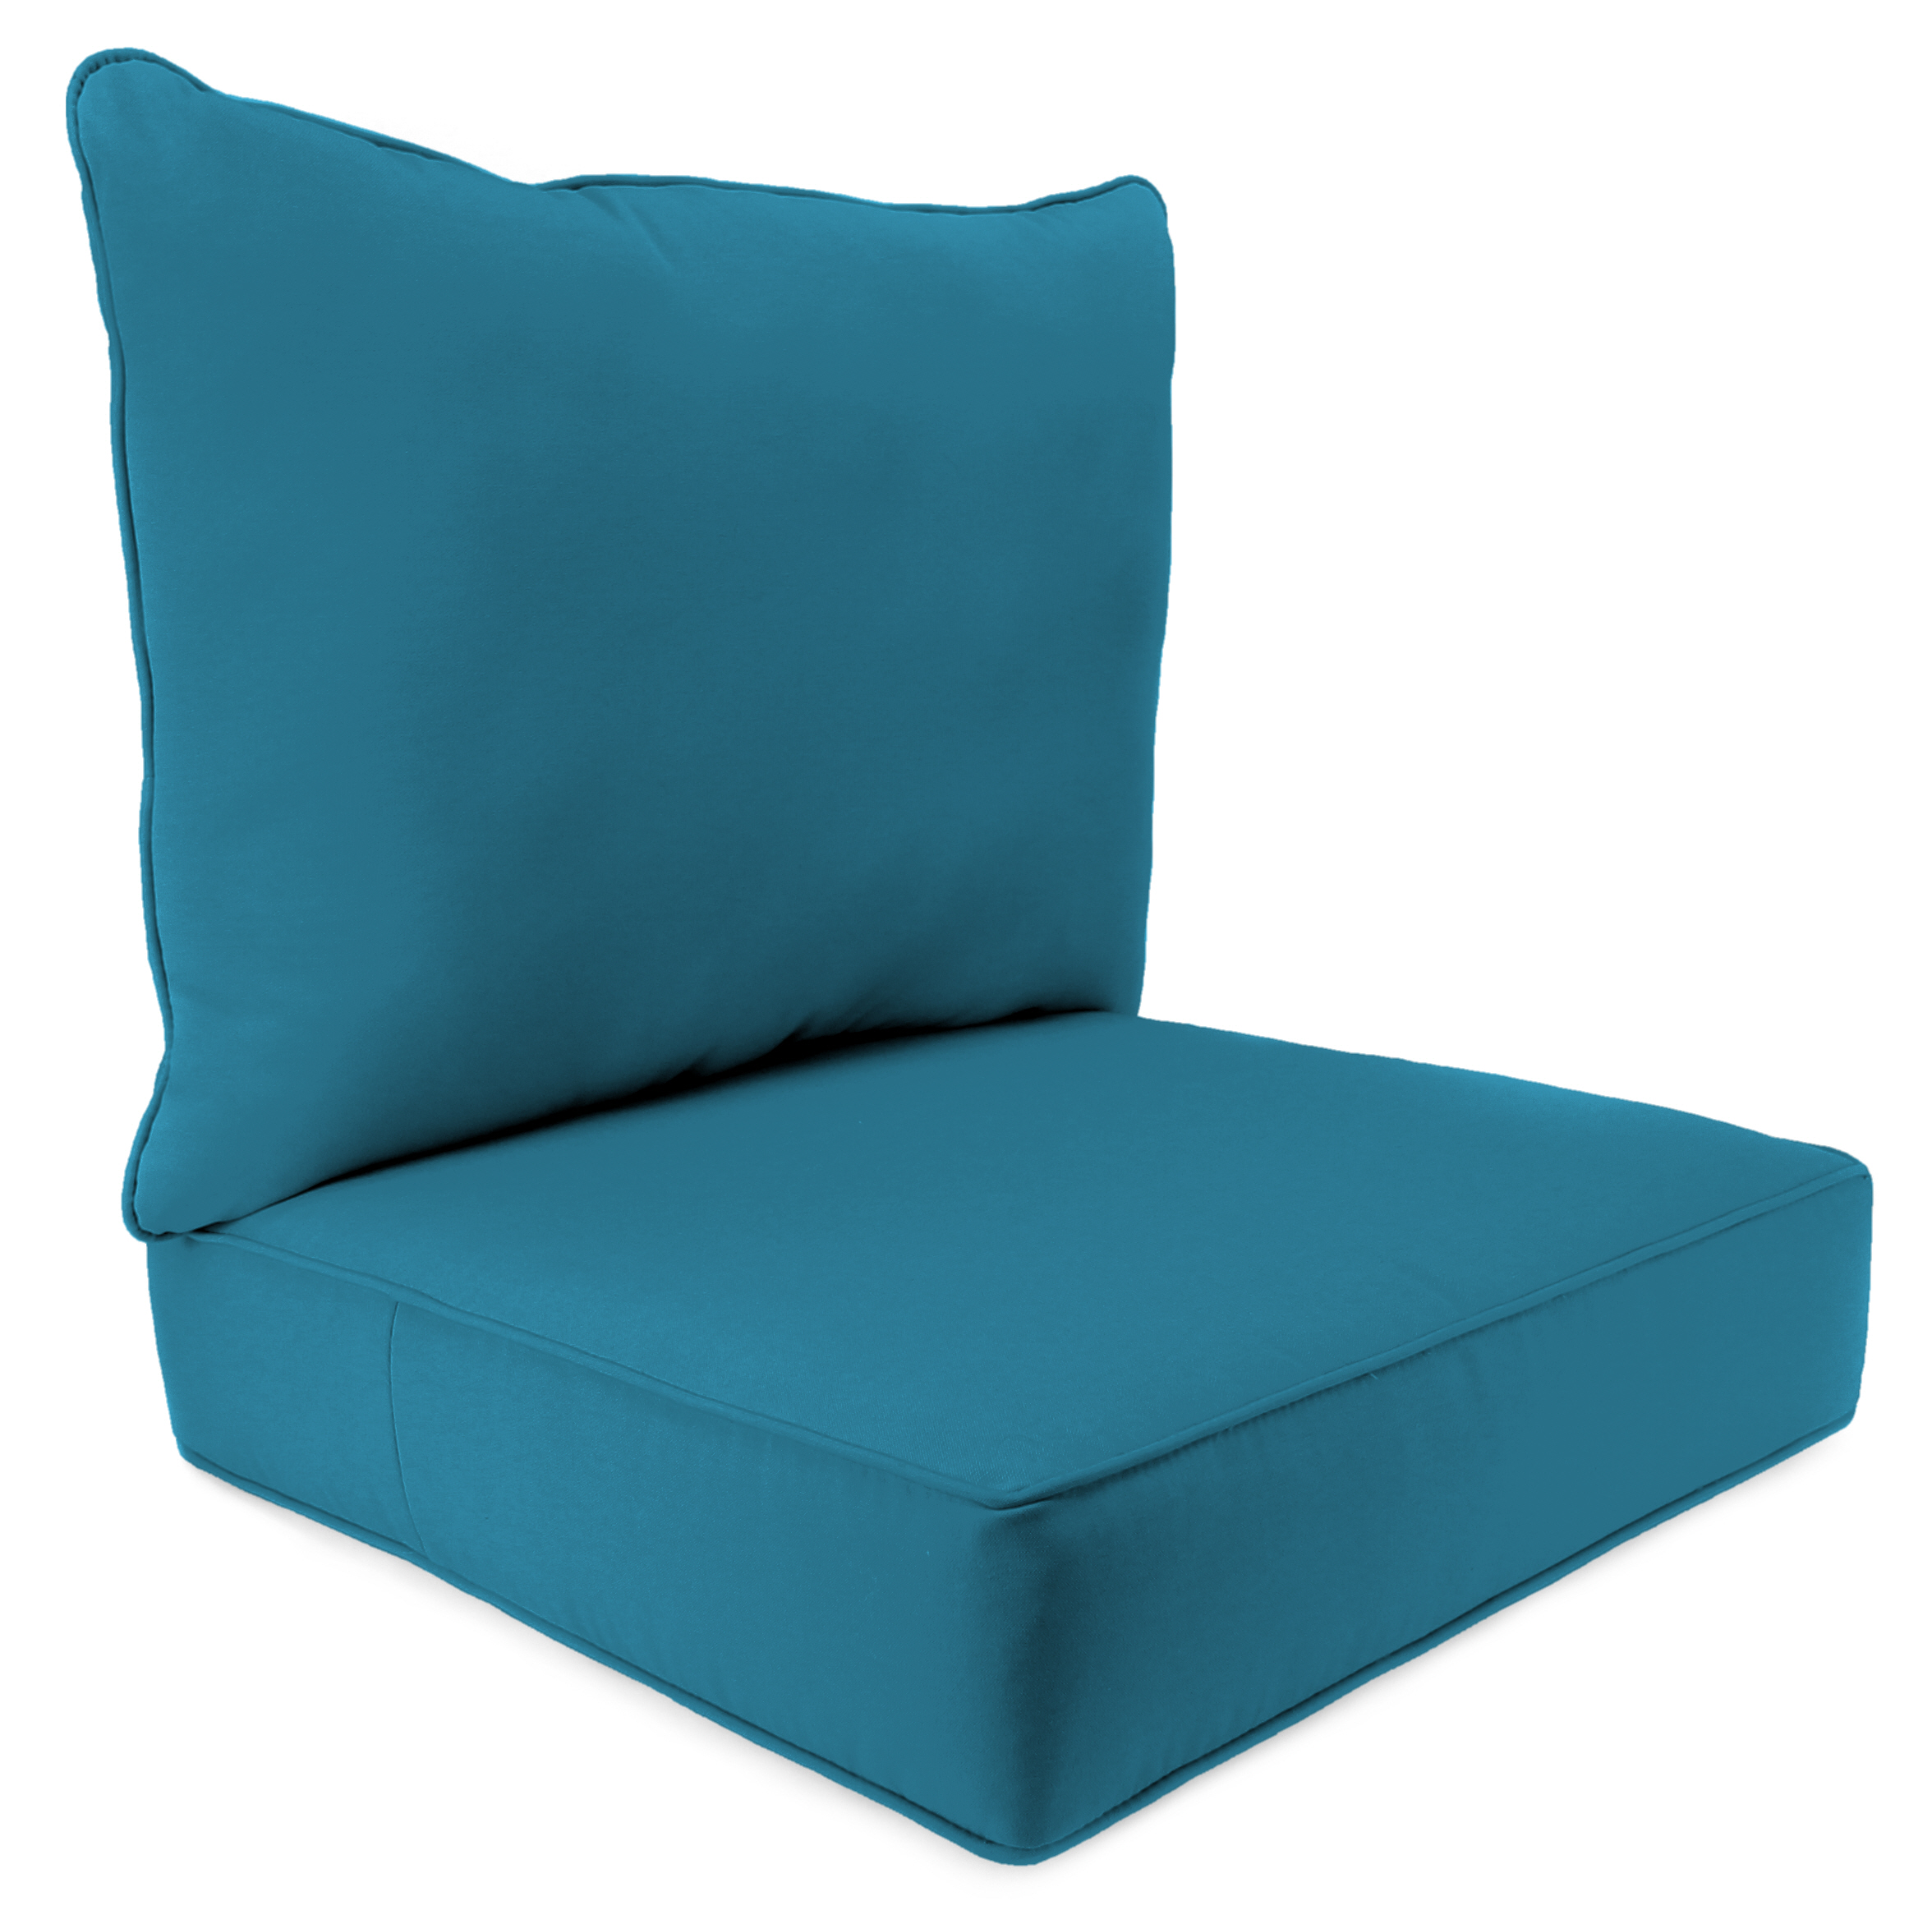 2 PC Deep Seat Chair Cushion